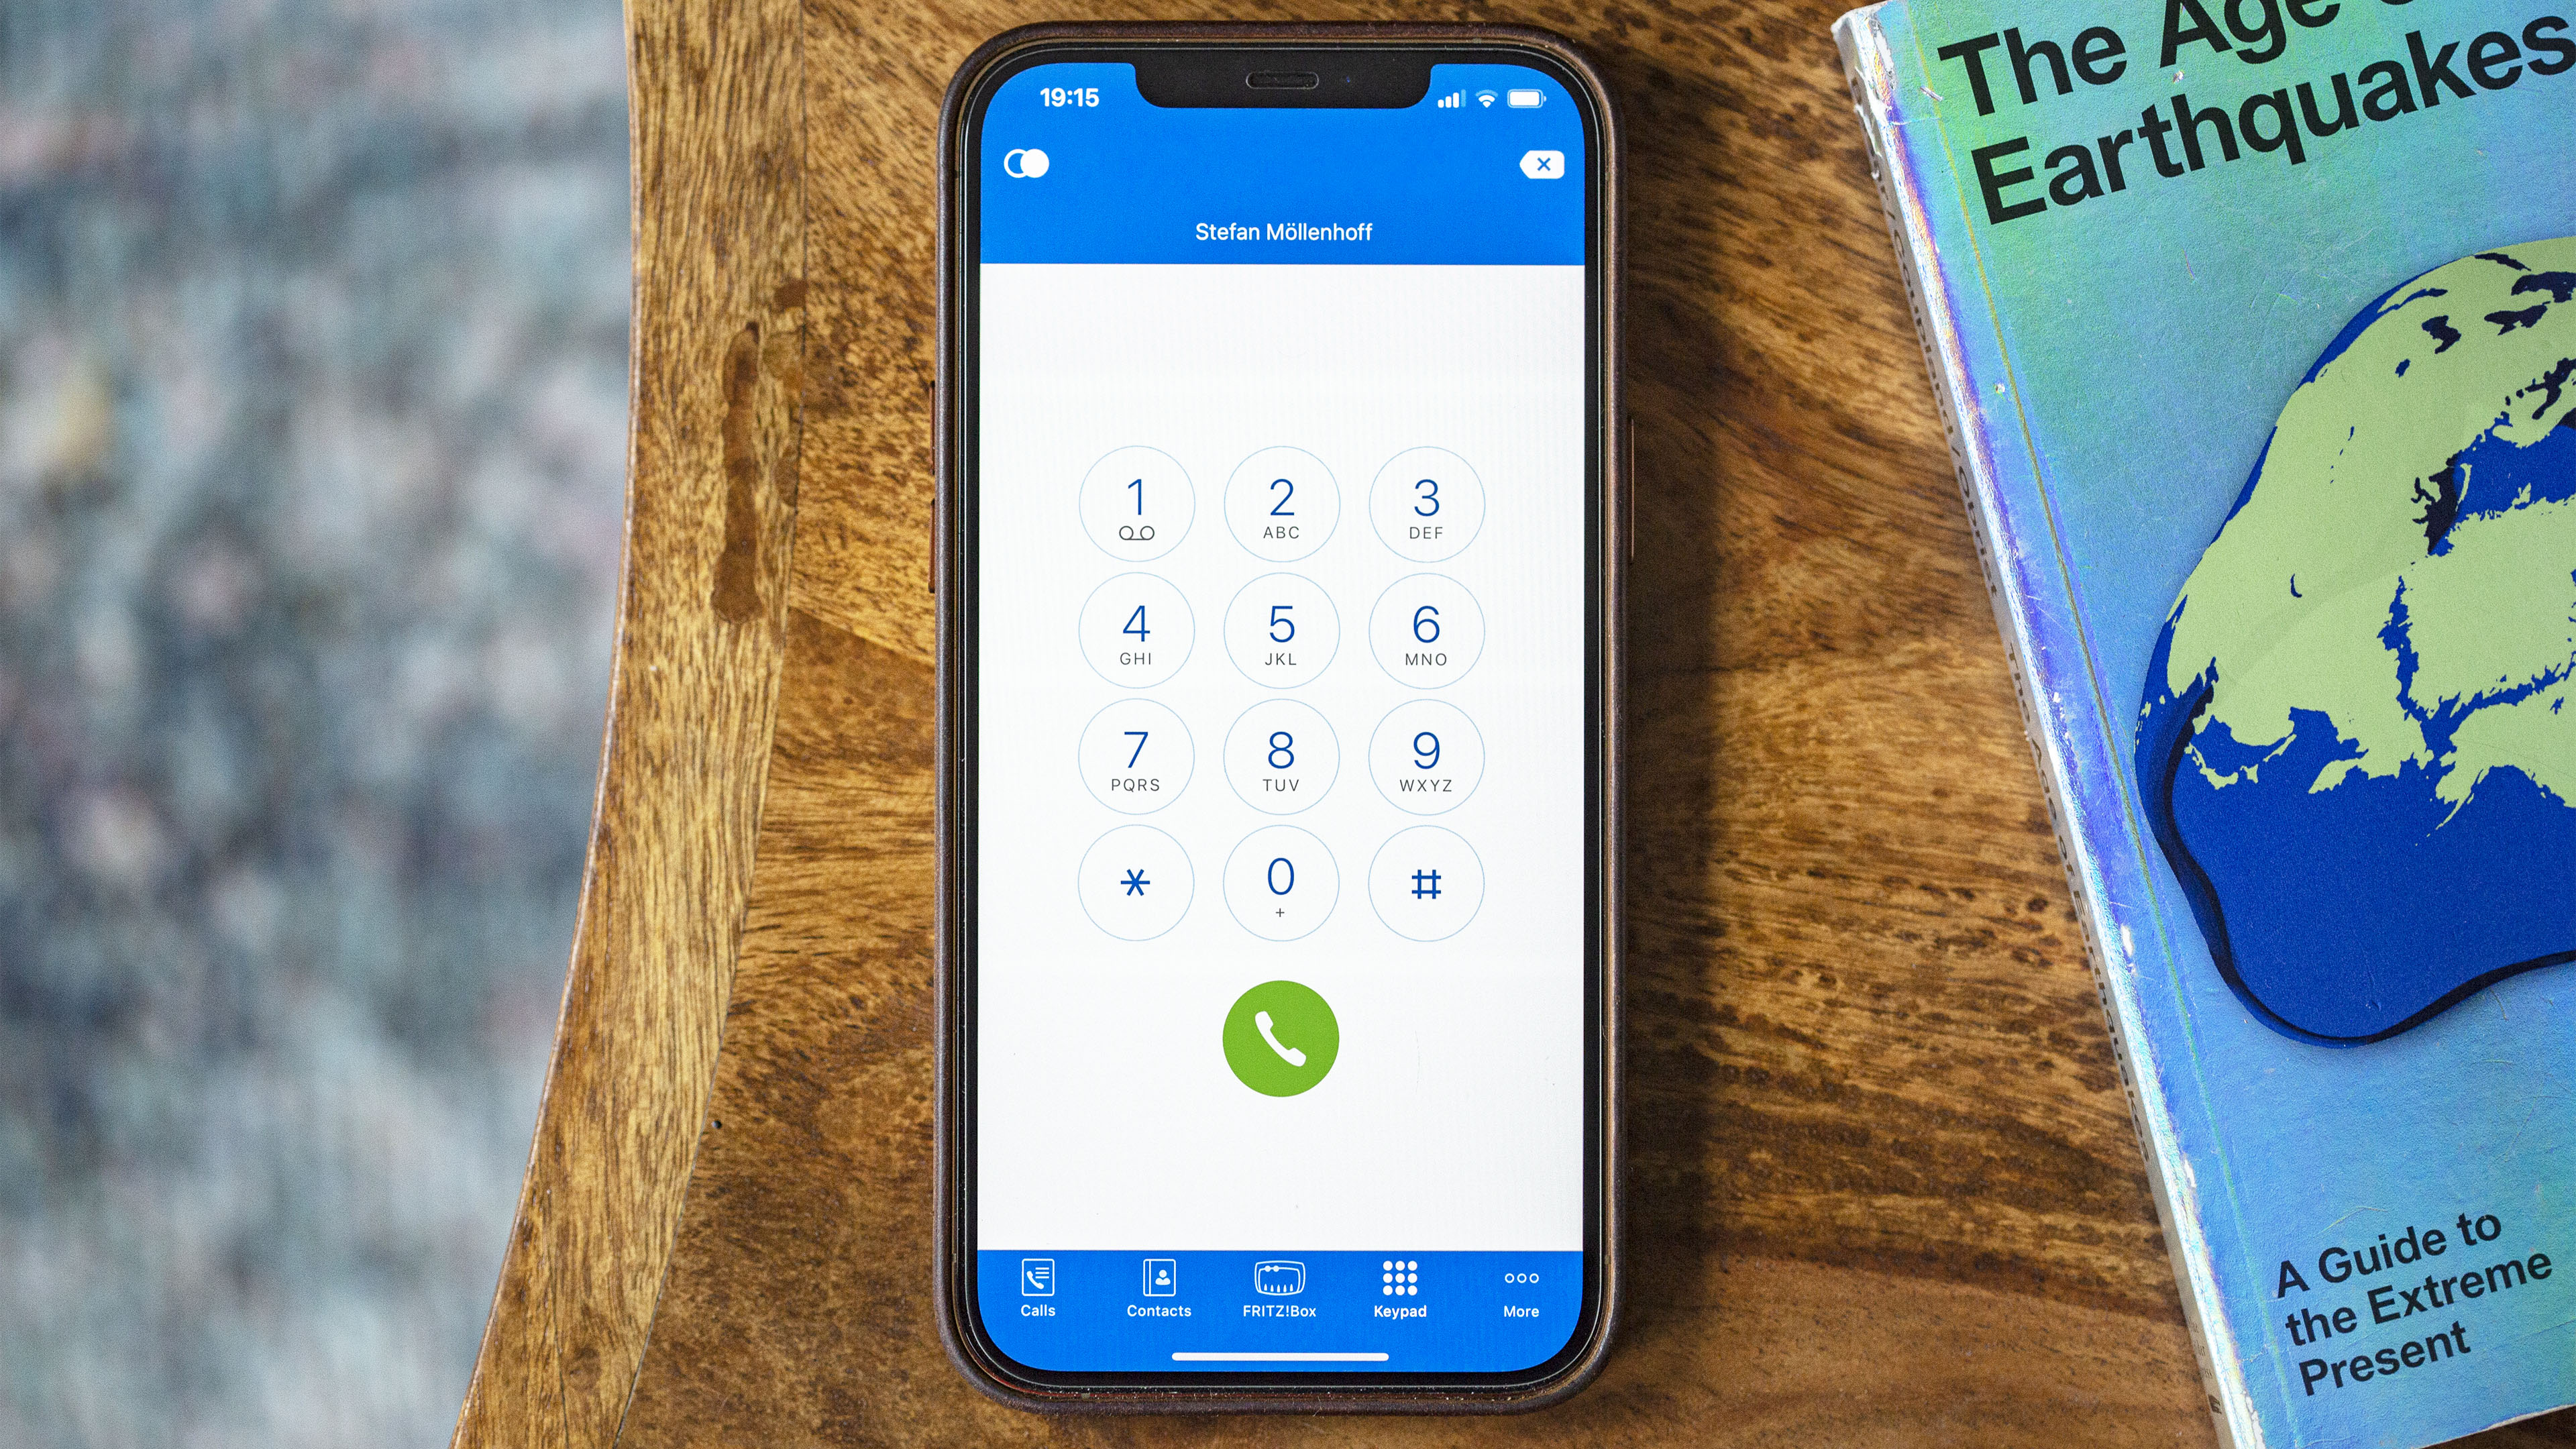 Use your smartphone as a landline: How it works without DECT